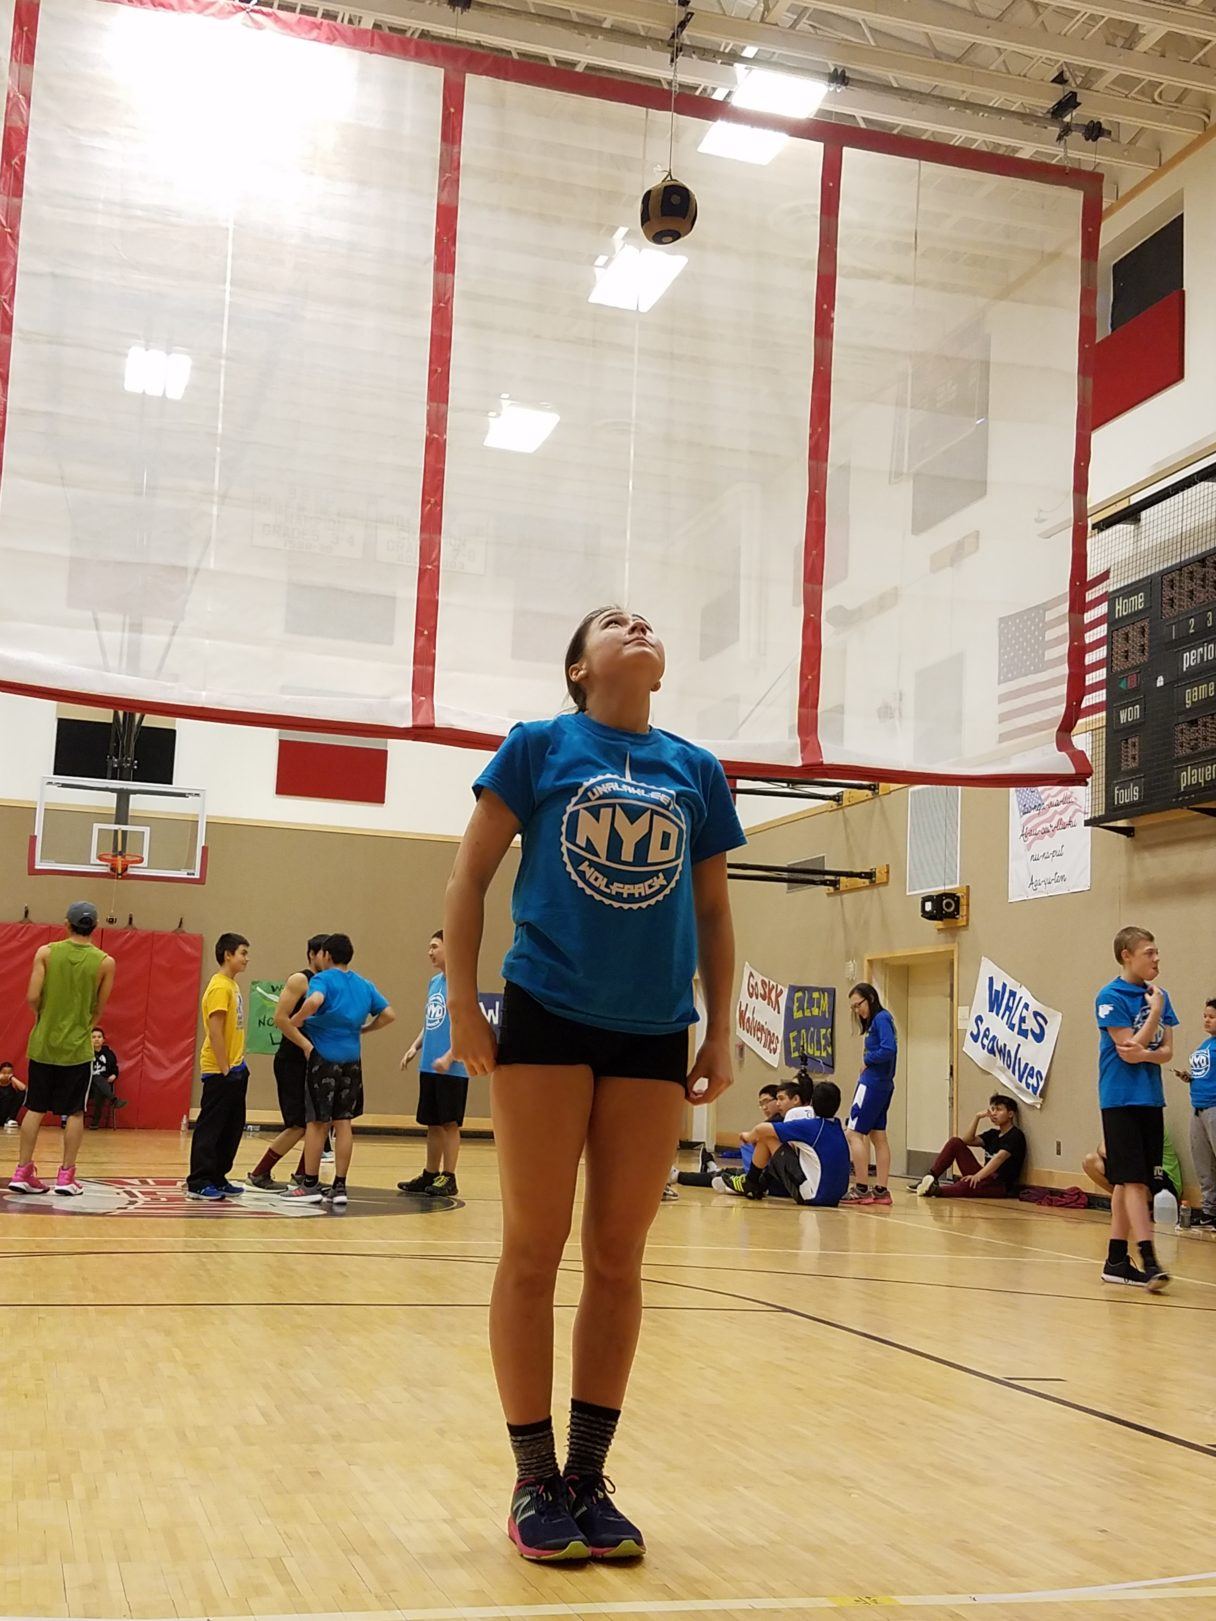 Allie Ivanoff eyes the Canadian One-foot High Kick target at the 2018 BSSD NYO, held in St. Michael.